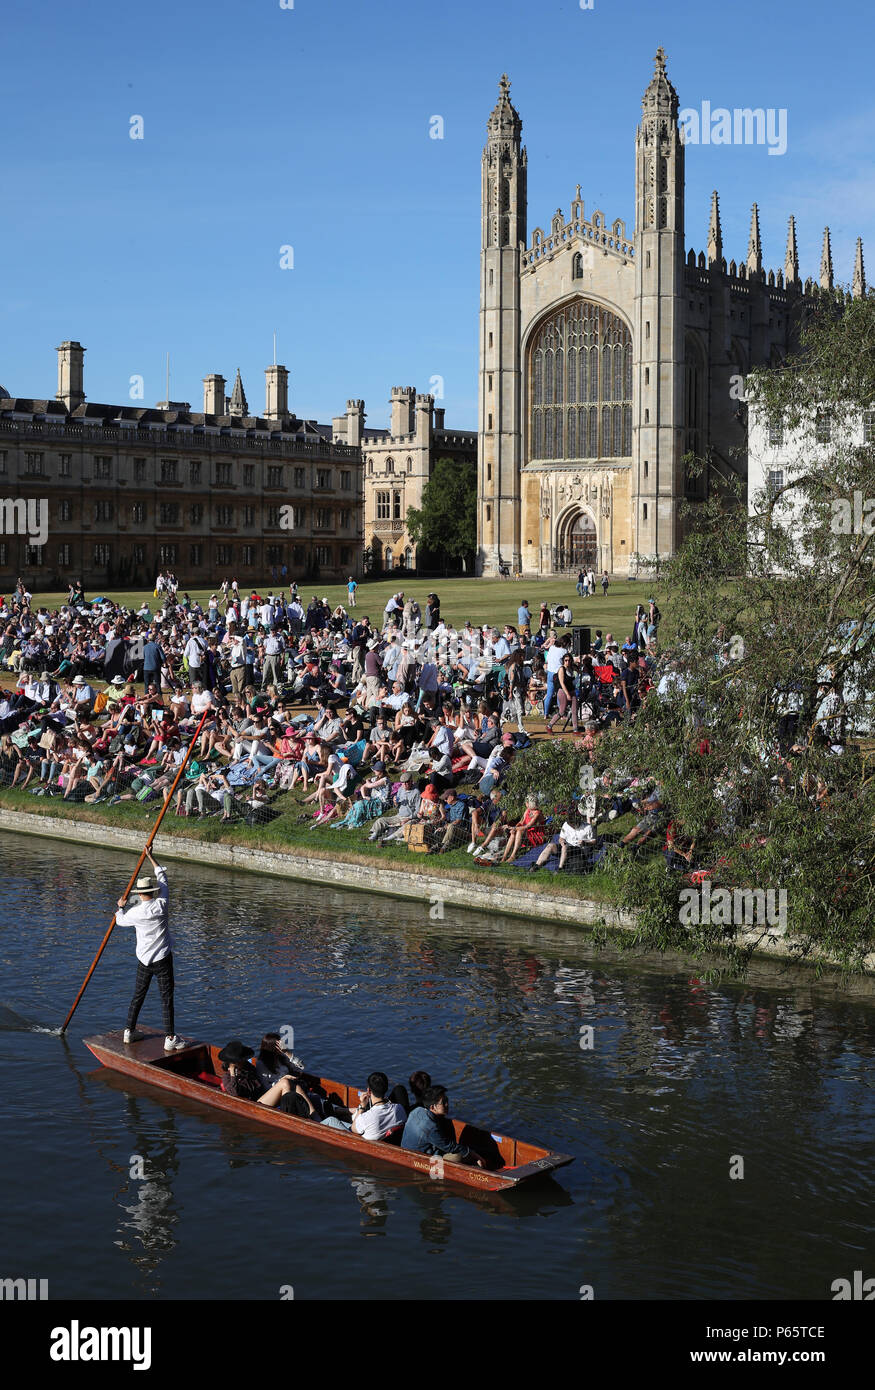 A Punt makes it's way along the river in front of Kings College Chapel at the University of Cambridge. - Stock Image